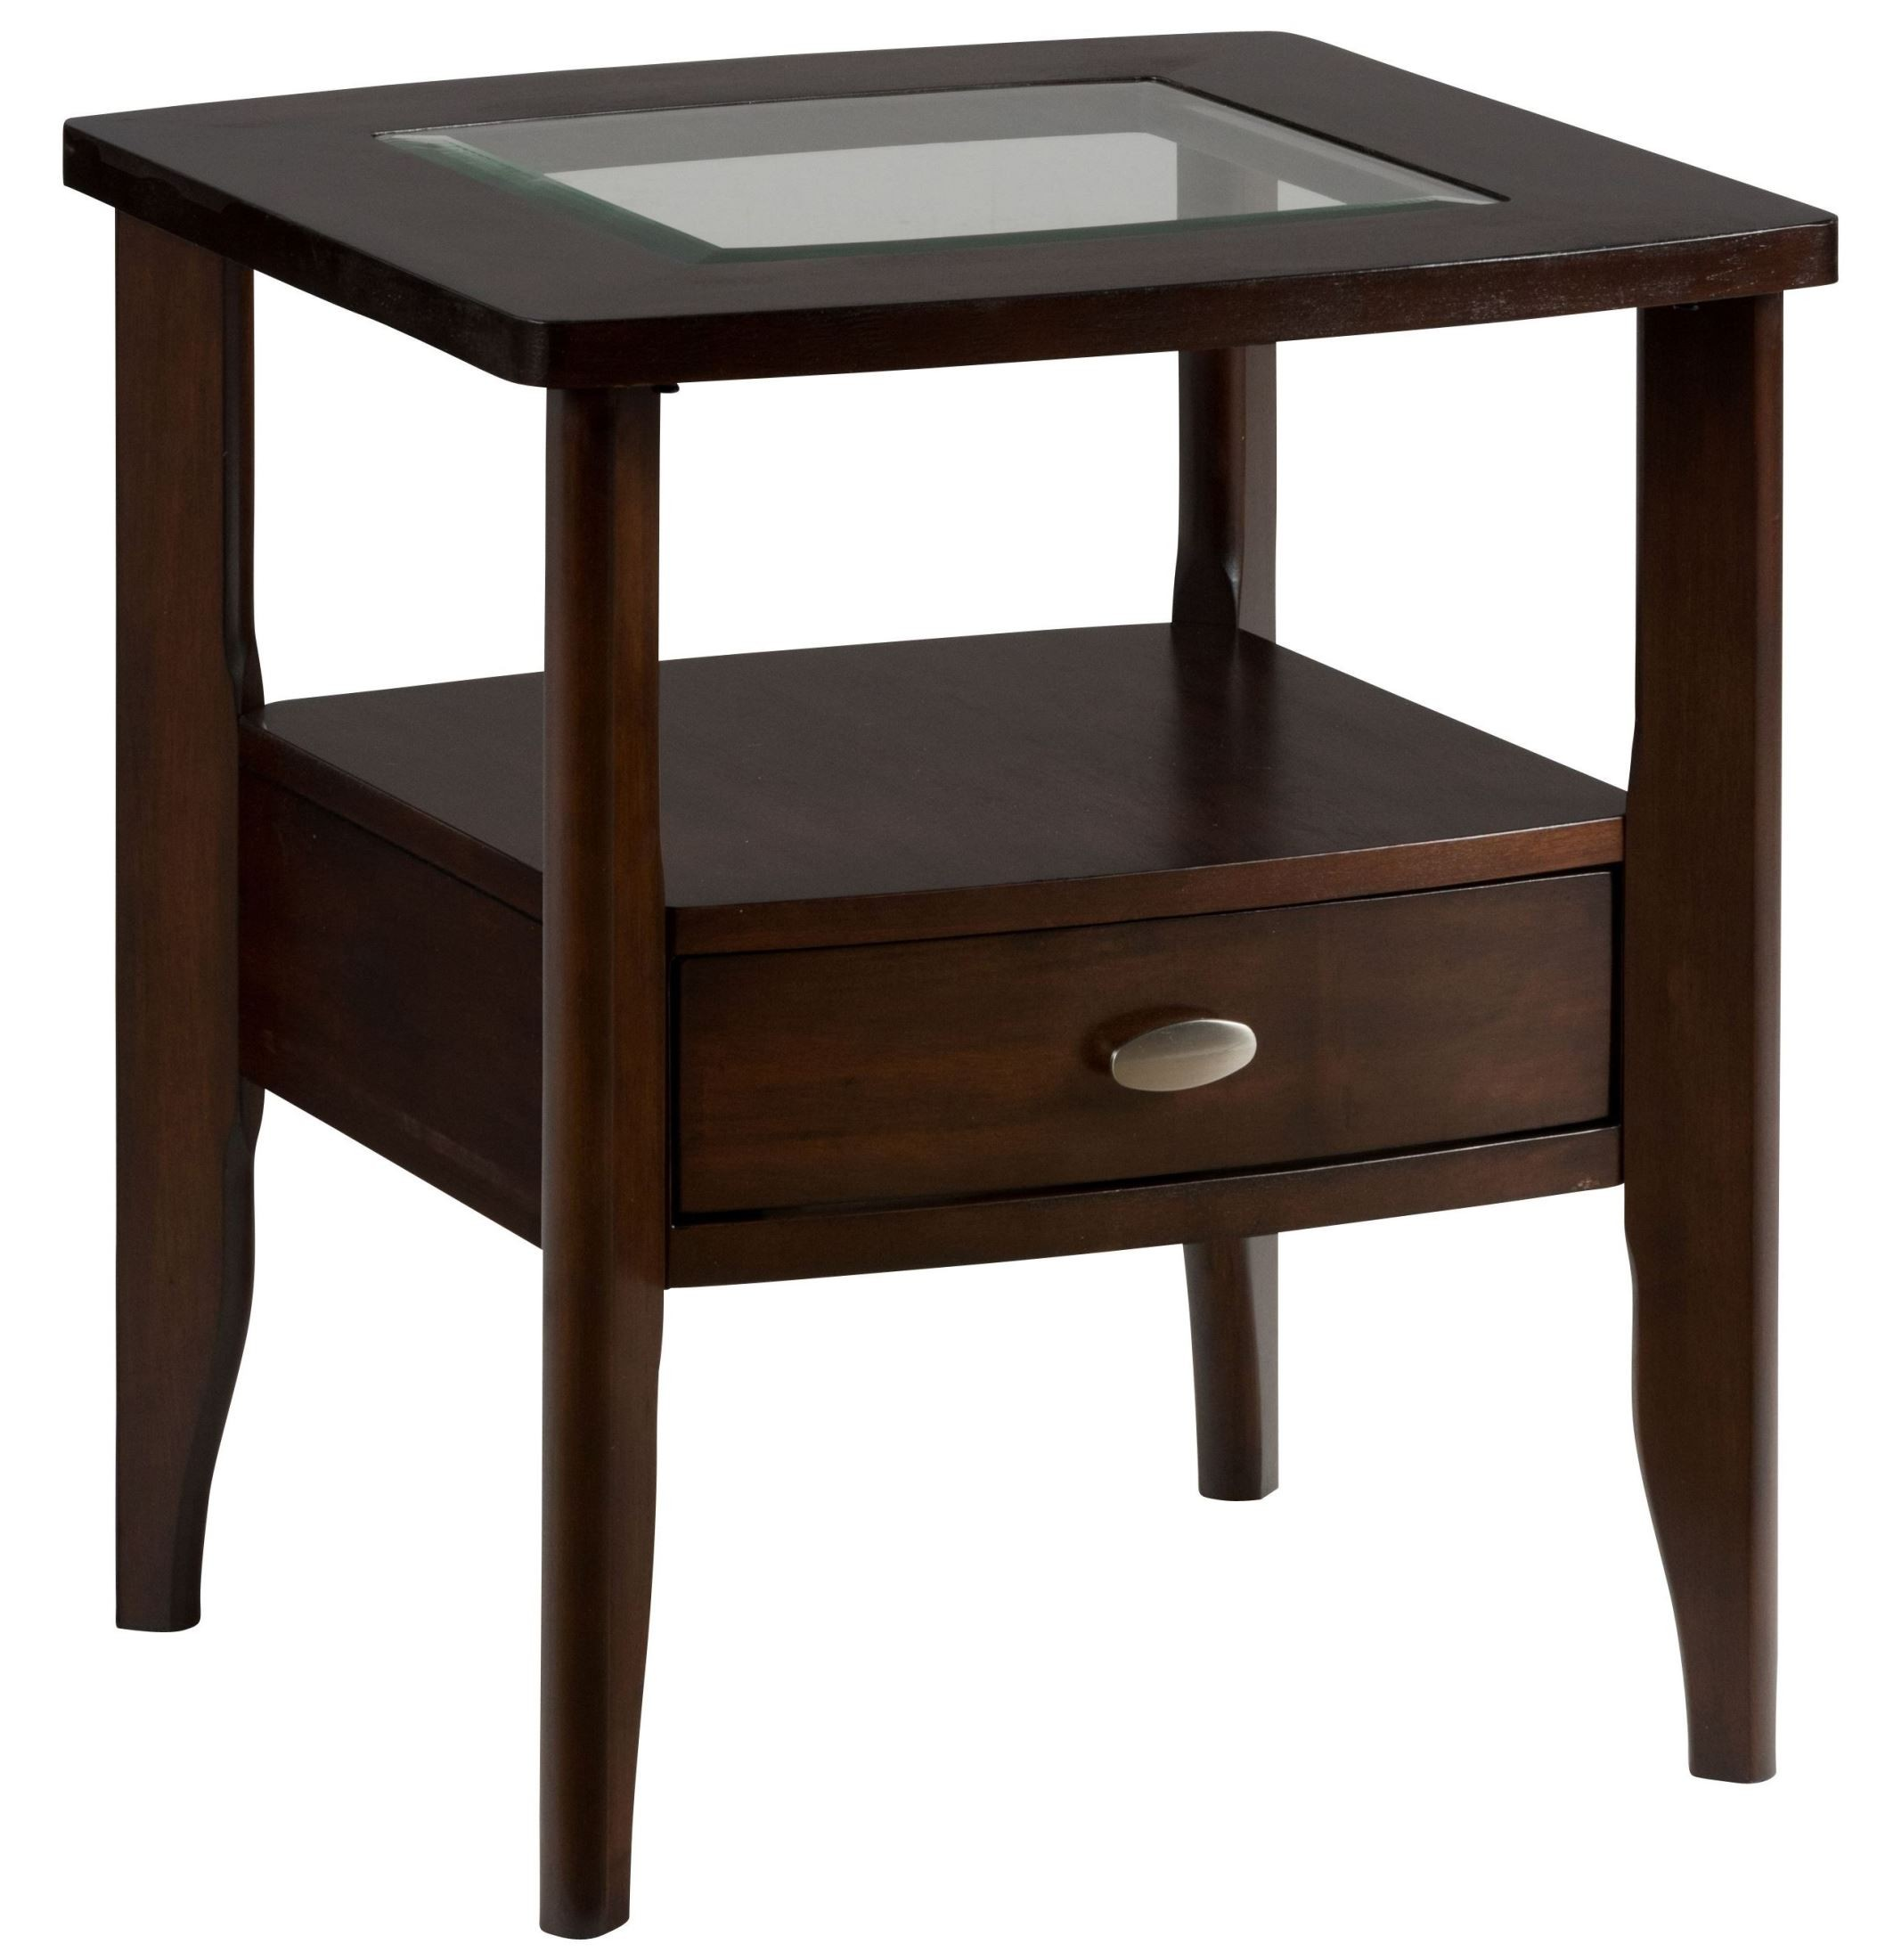 Montego Merlot End Table From Jofran